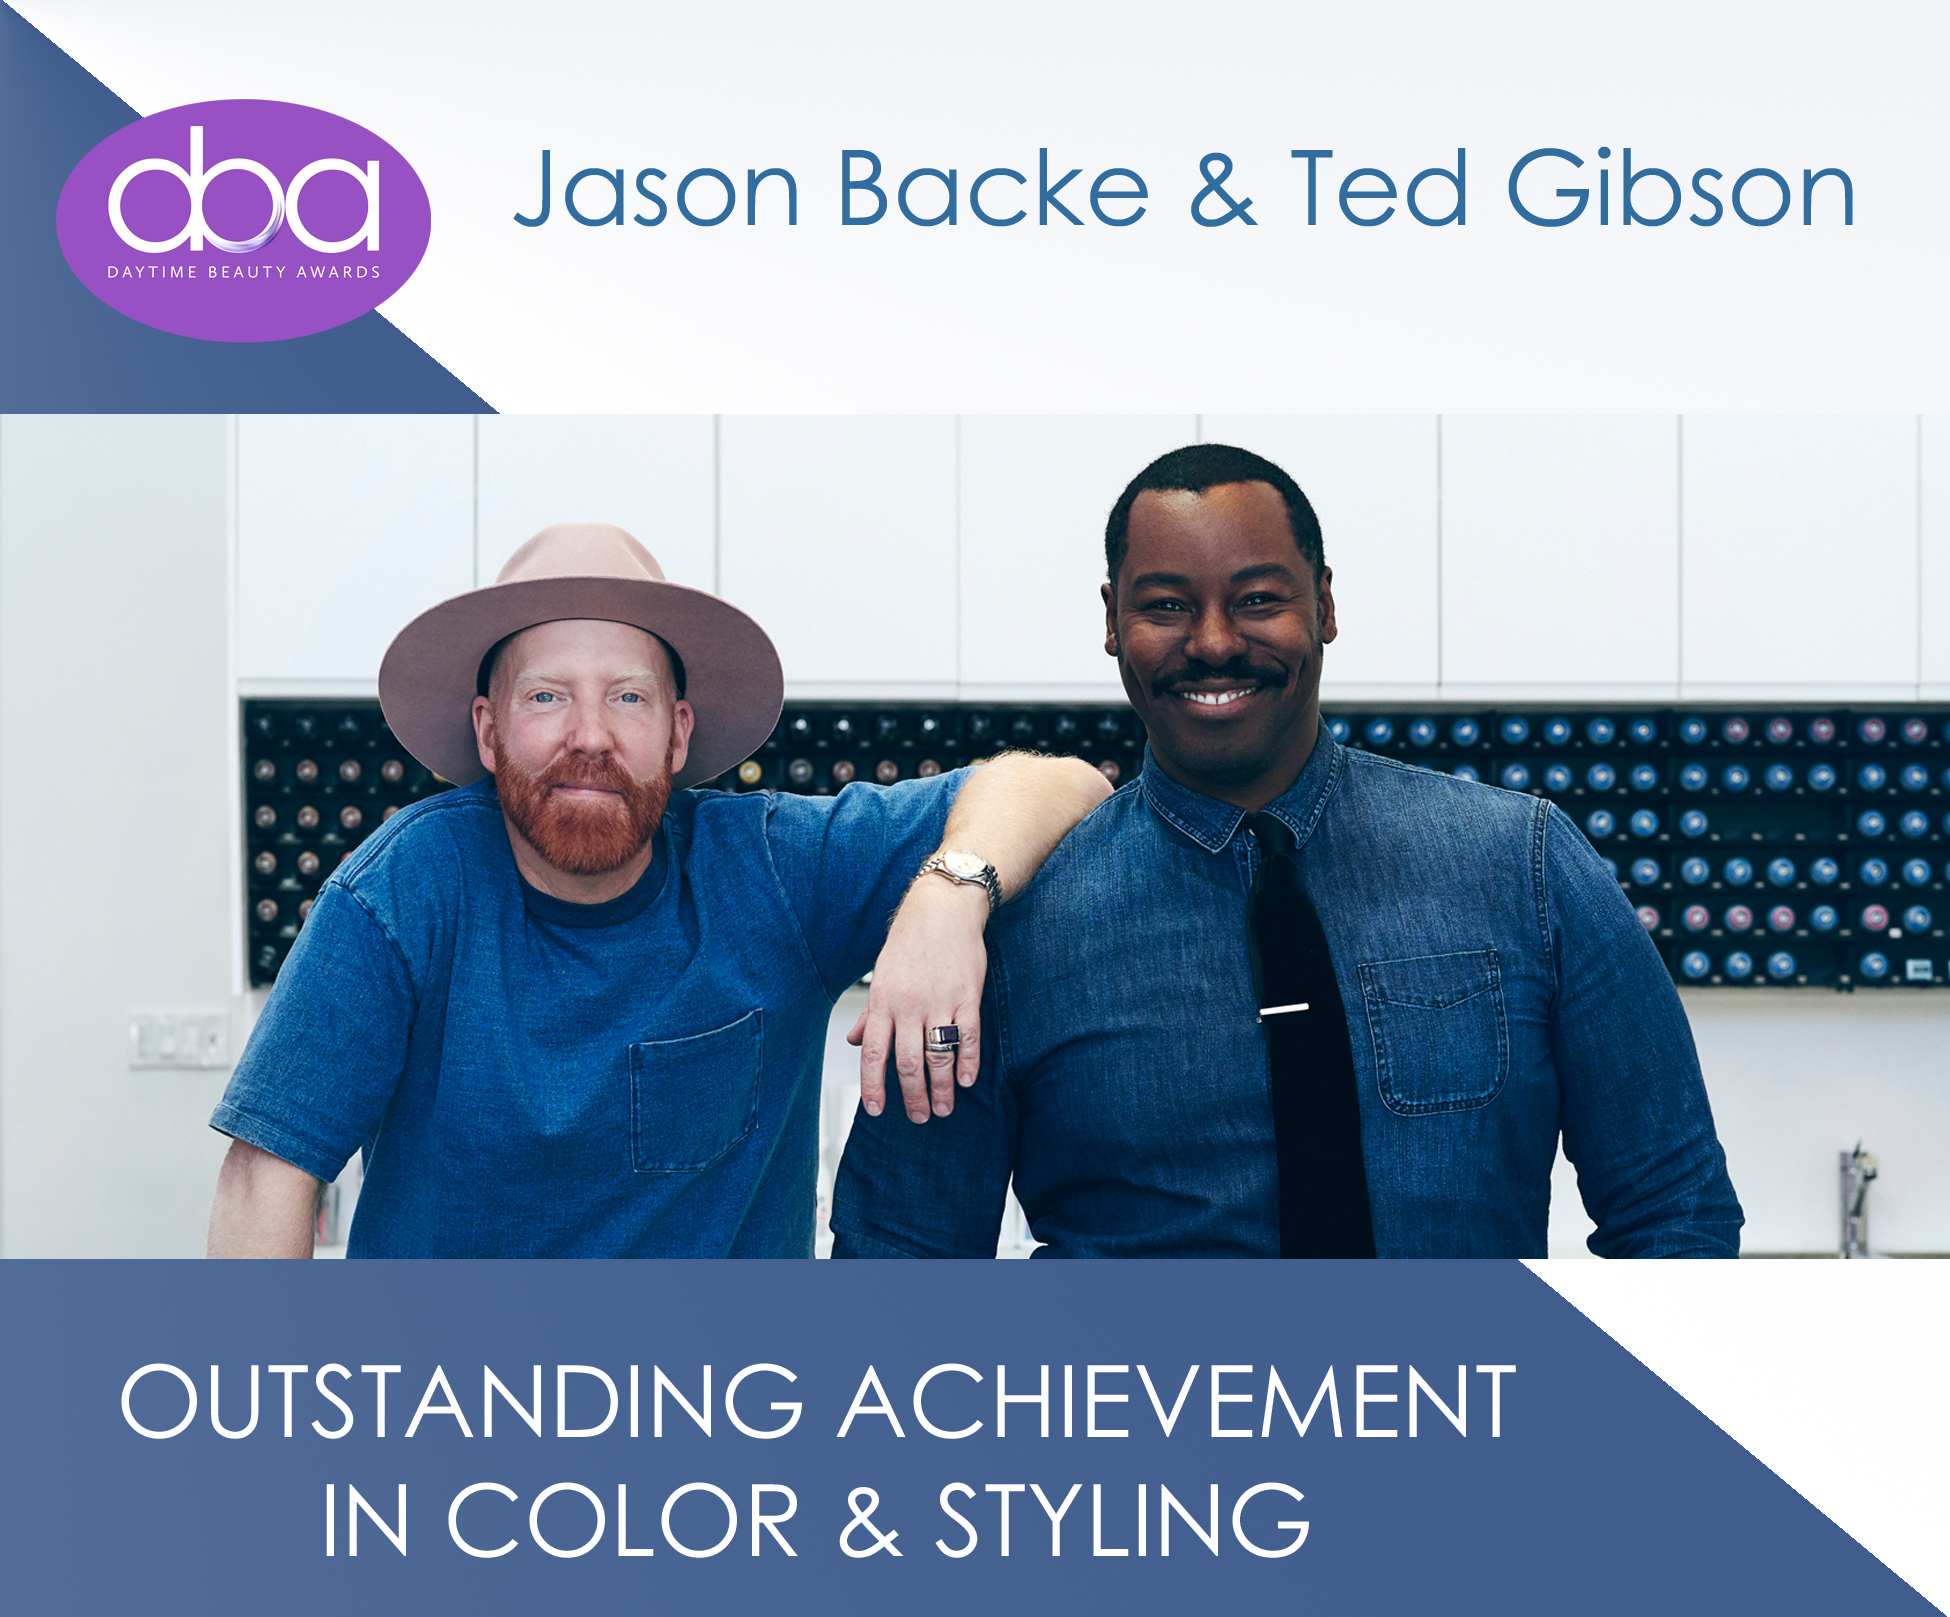 ted gibson, jason backe, starring, daytime beauty awards, color, styling